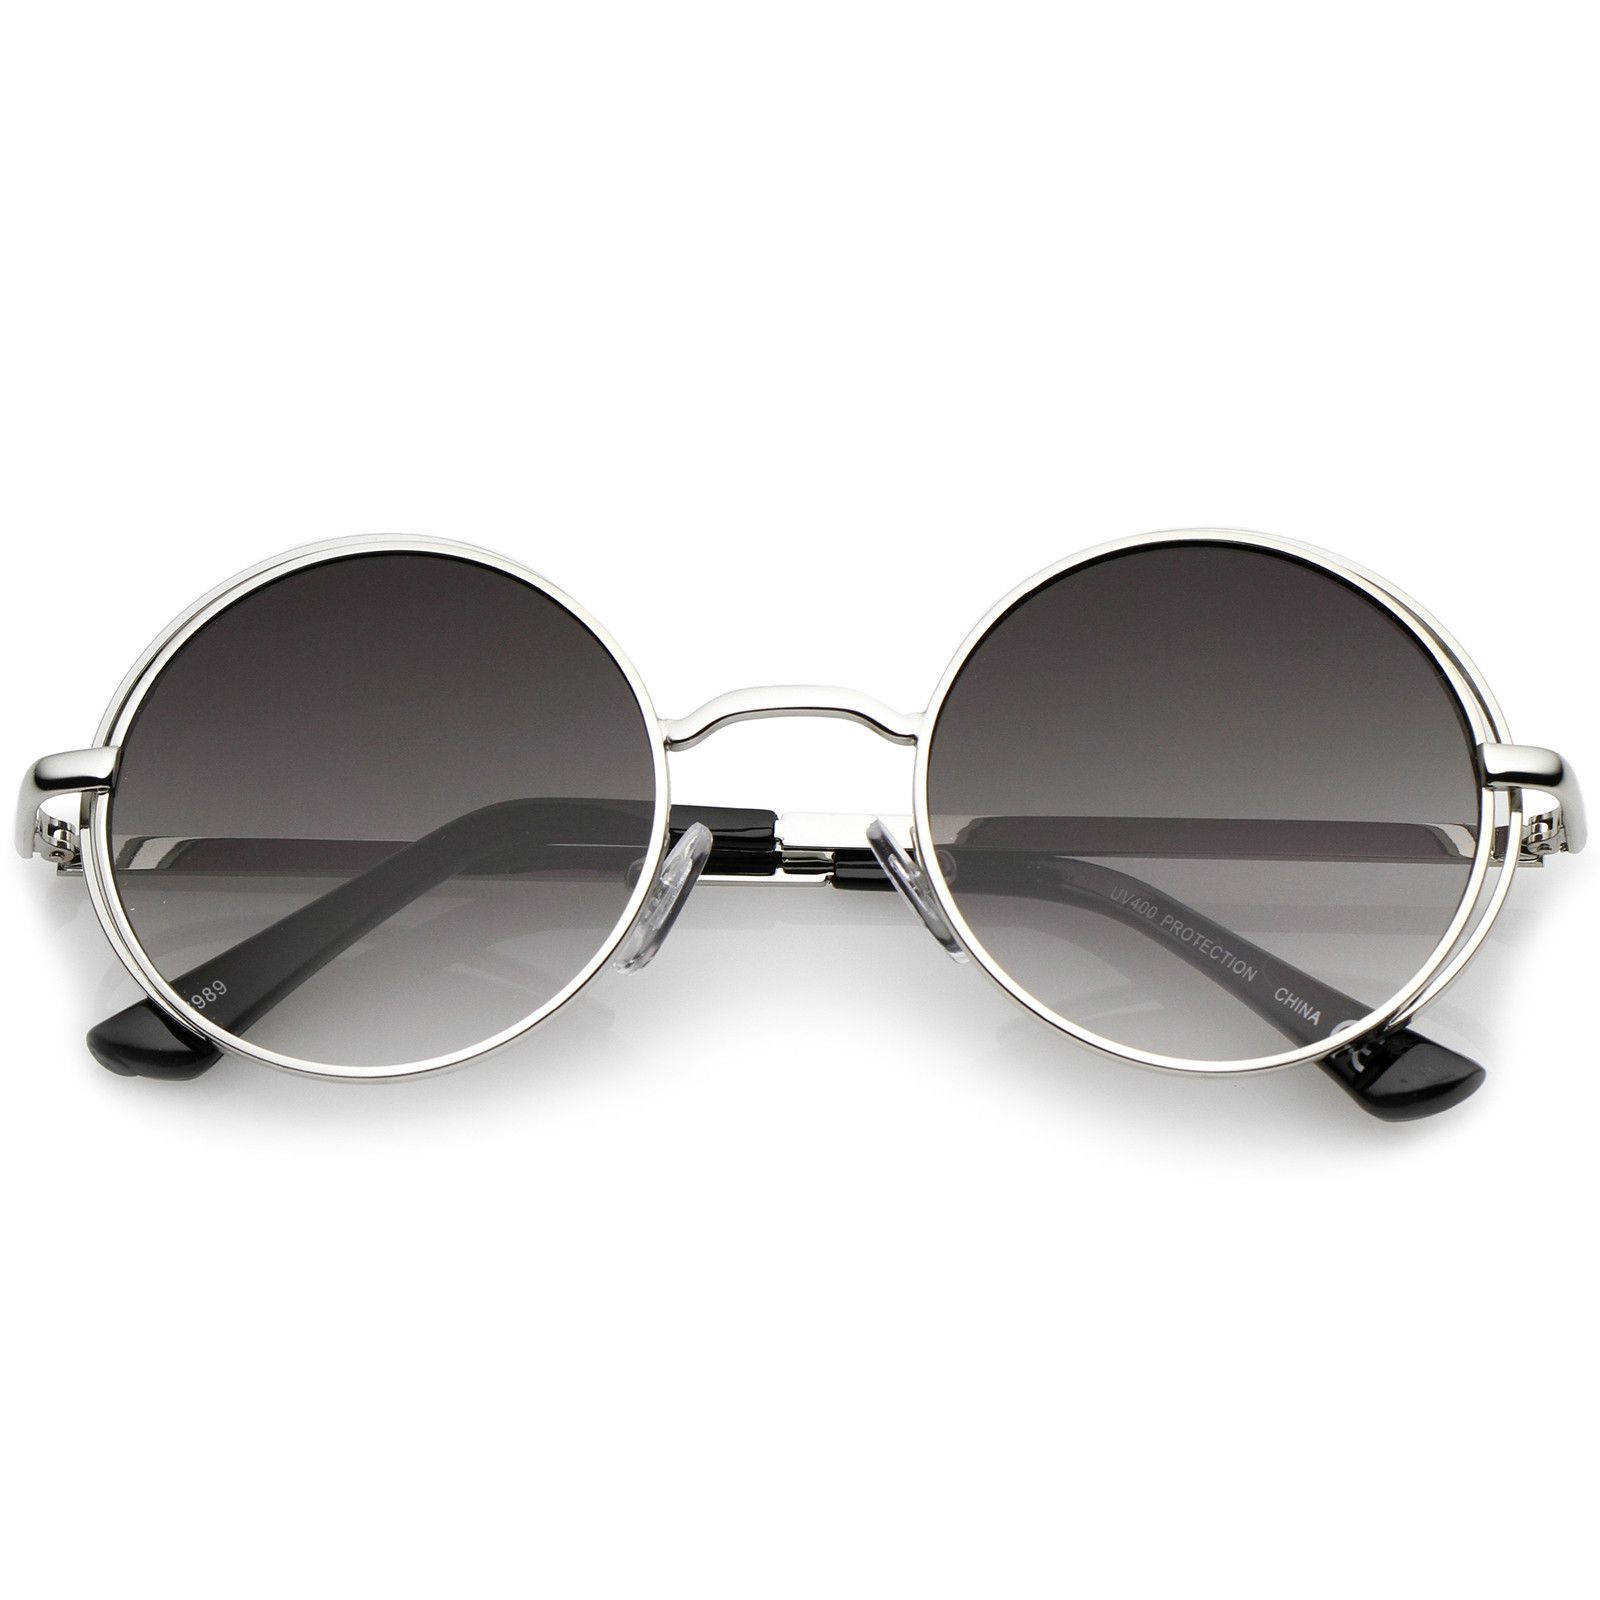 Retro Open Metal Frame Slim Temples Flat Lens Round Sunglasses 49mm